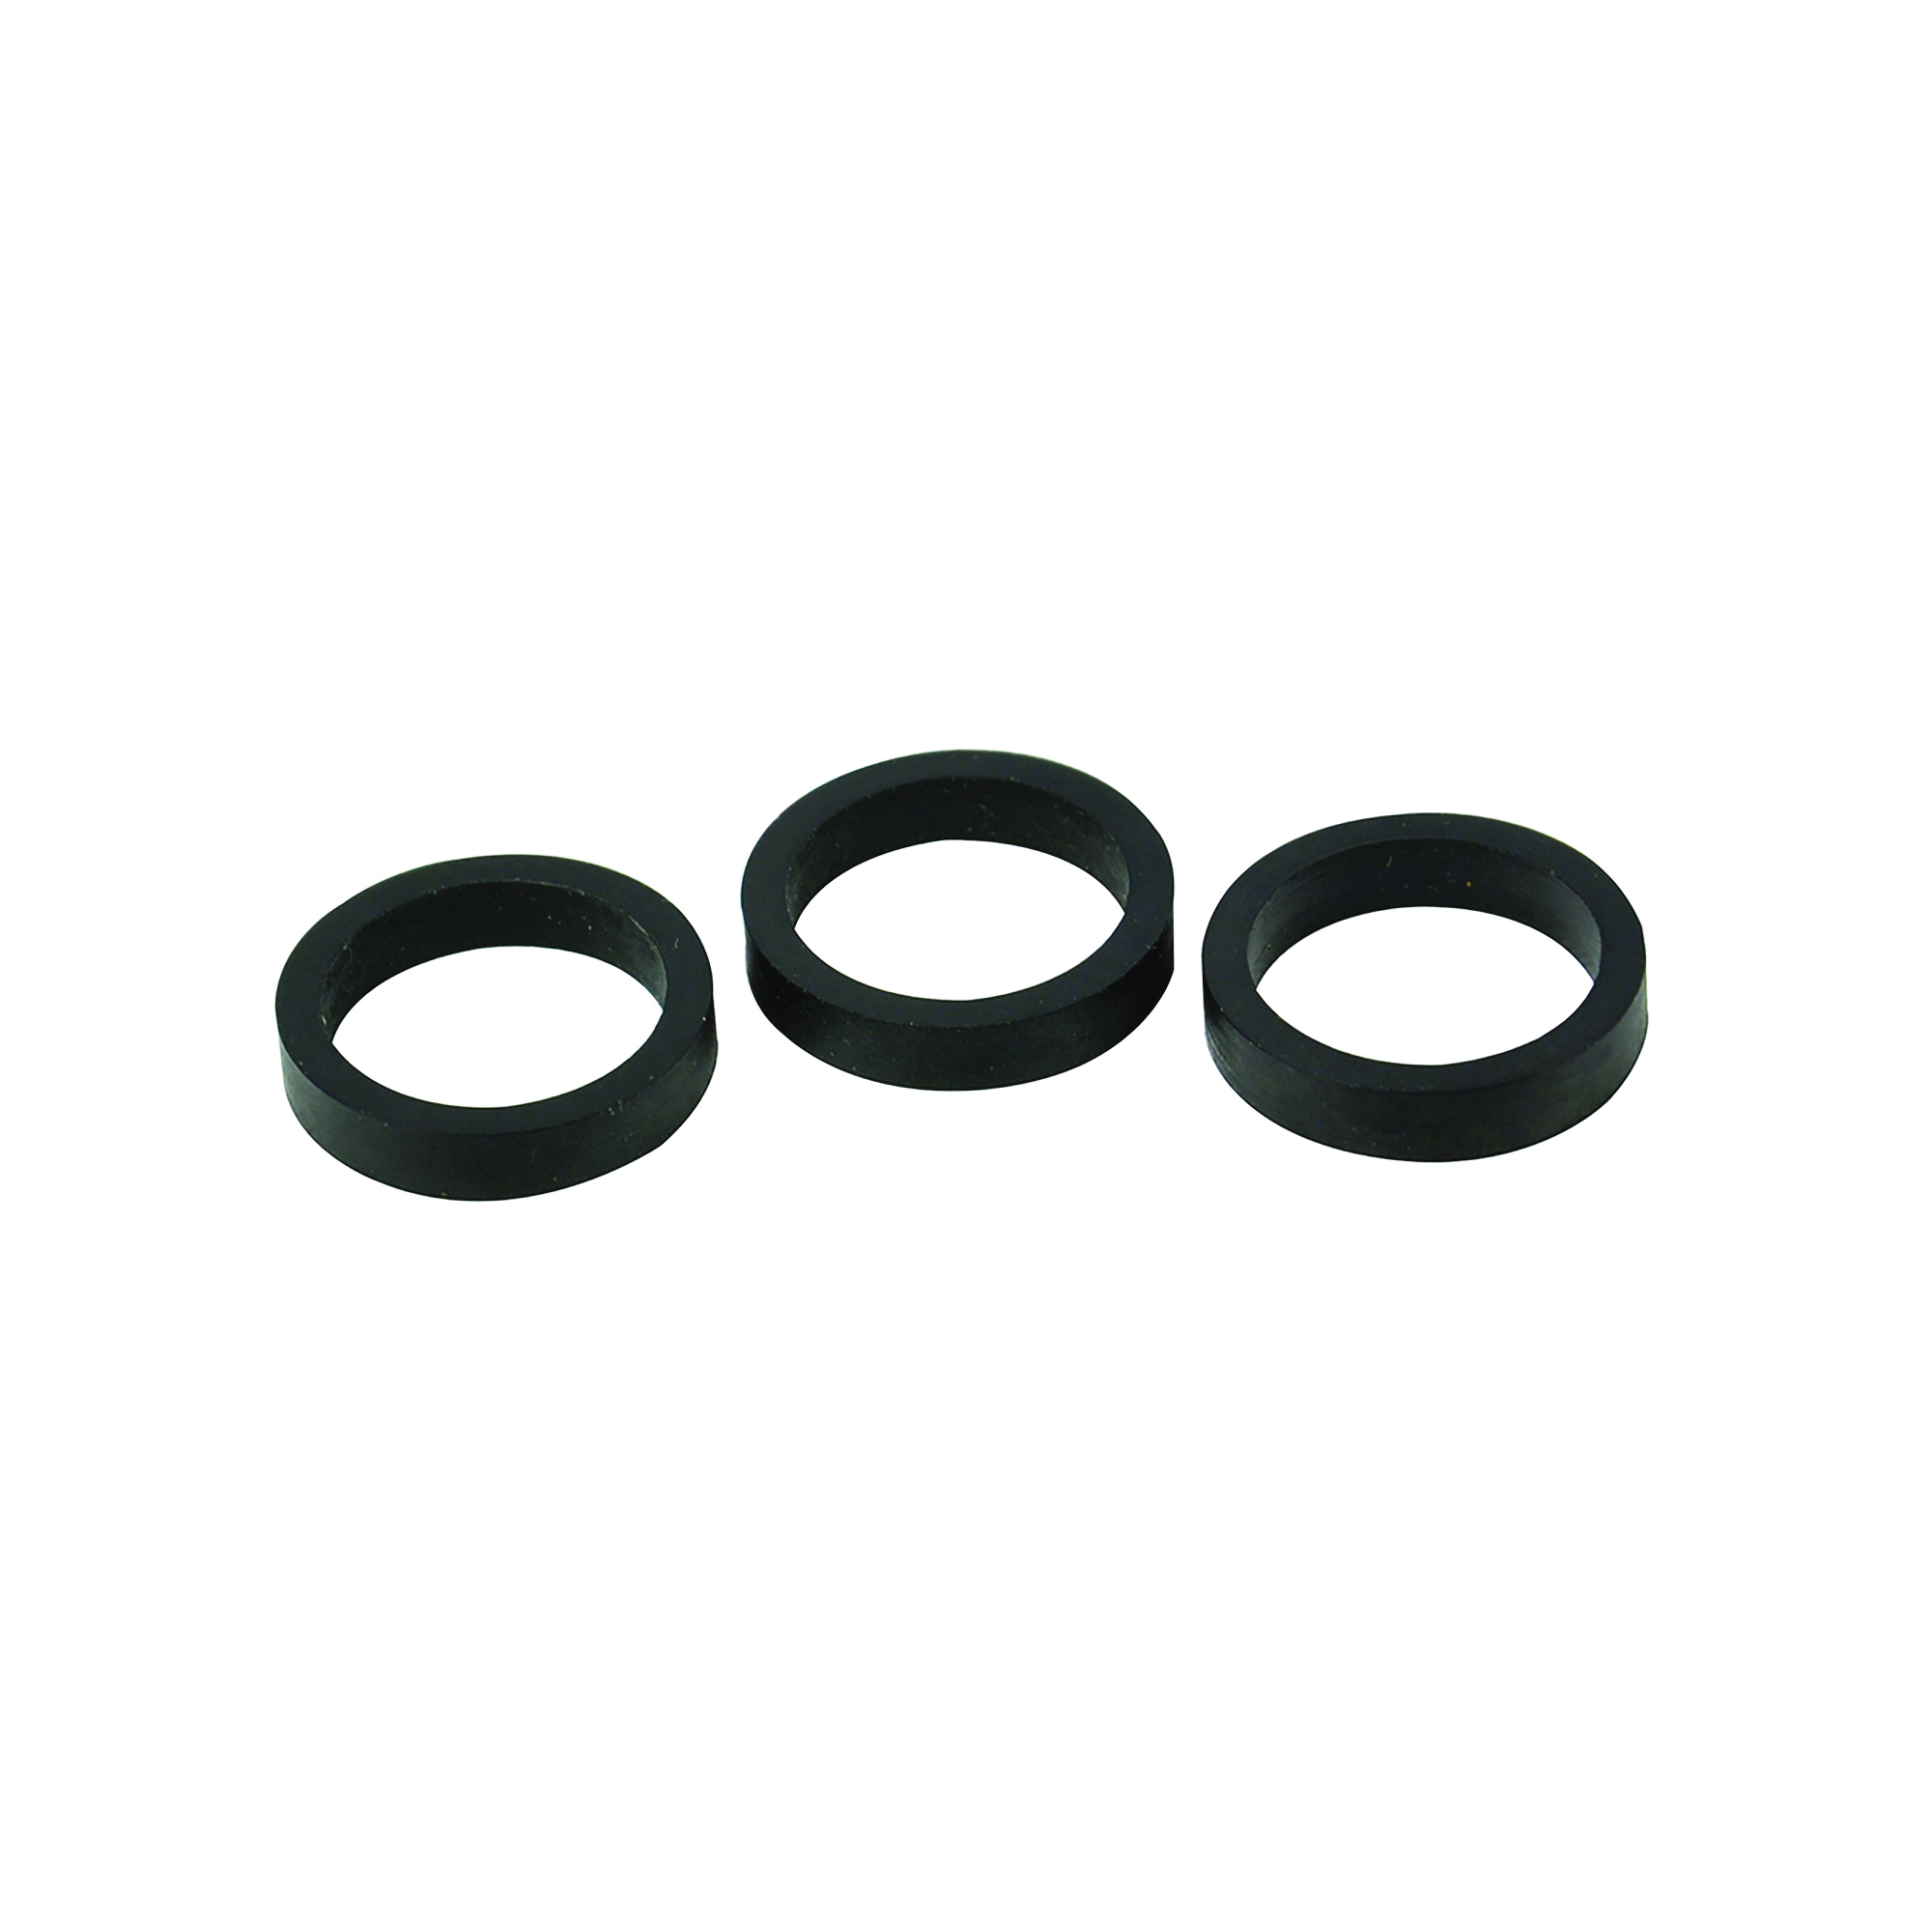 Picture of Danco 37072 Tailpiece Washer, 3/4 in